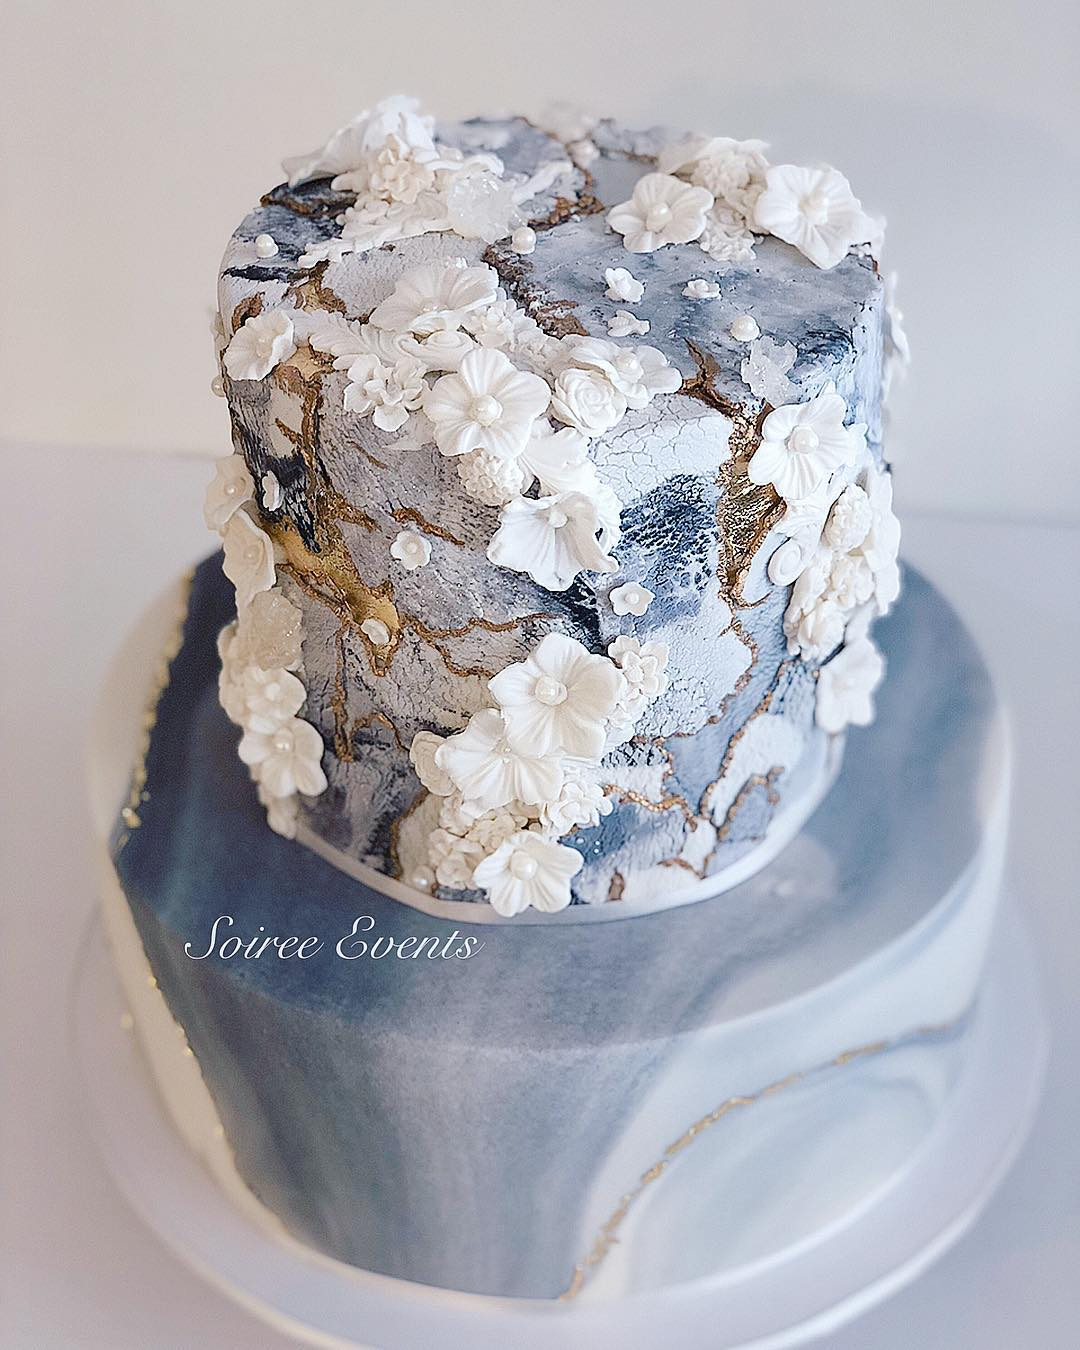 textured marble stone bas relief cake